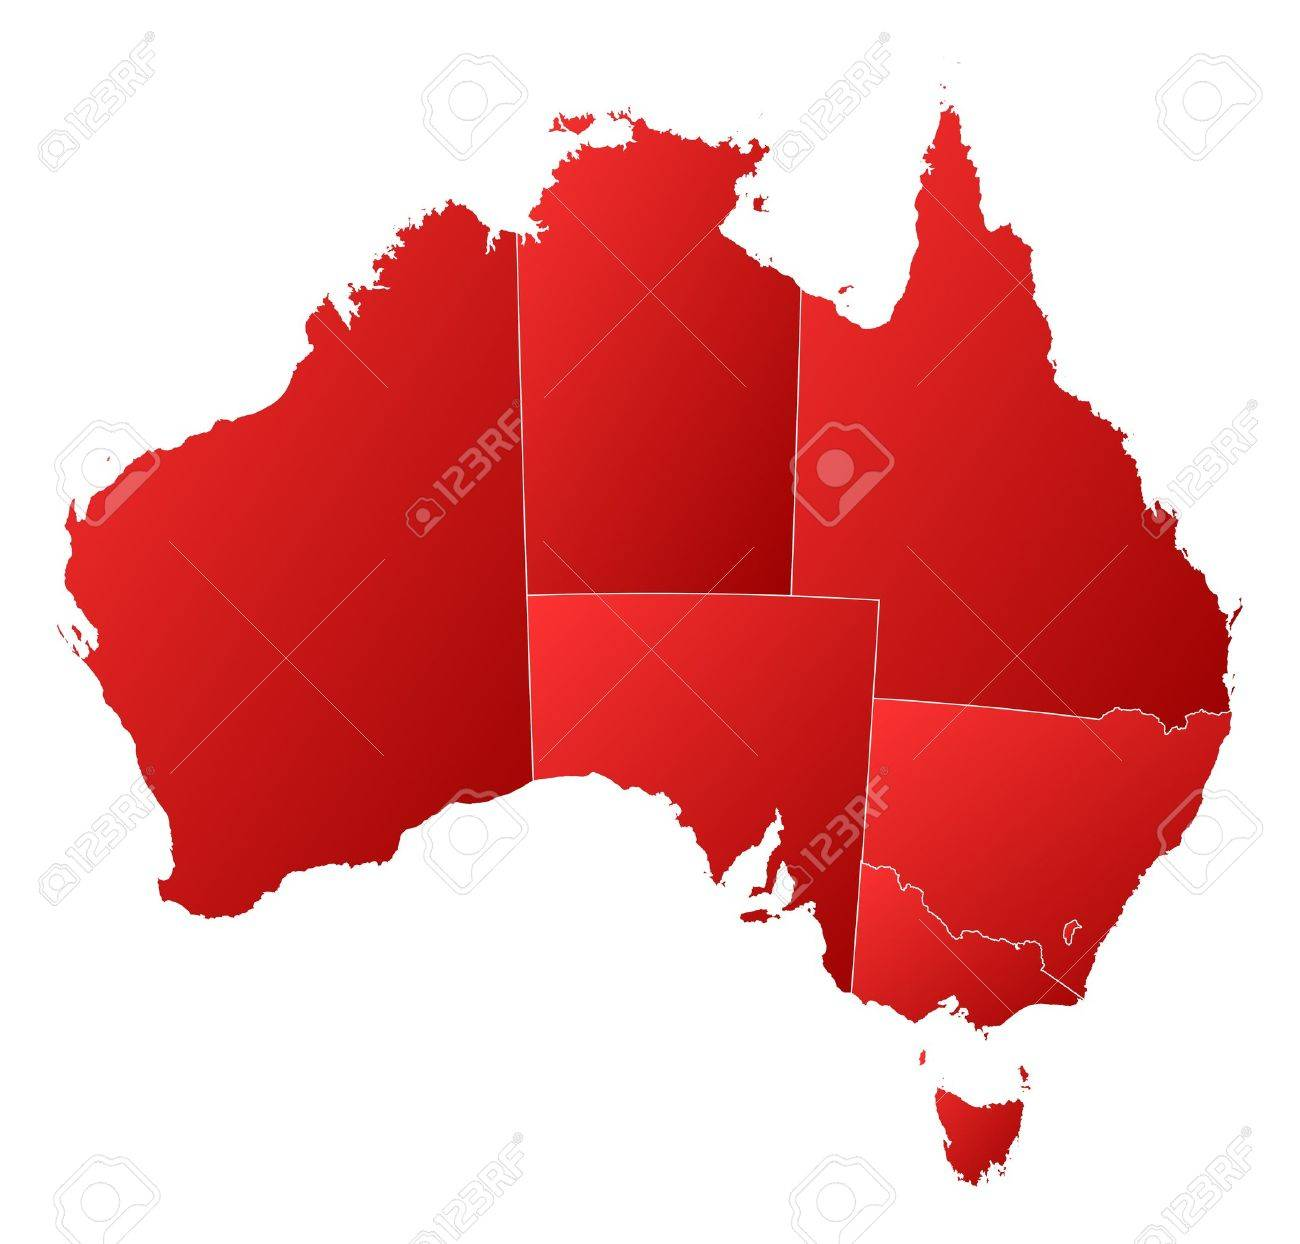 Political map of Australia with the several states. Stock Vector - 11505378